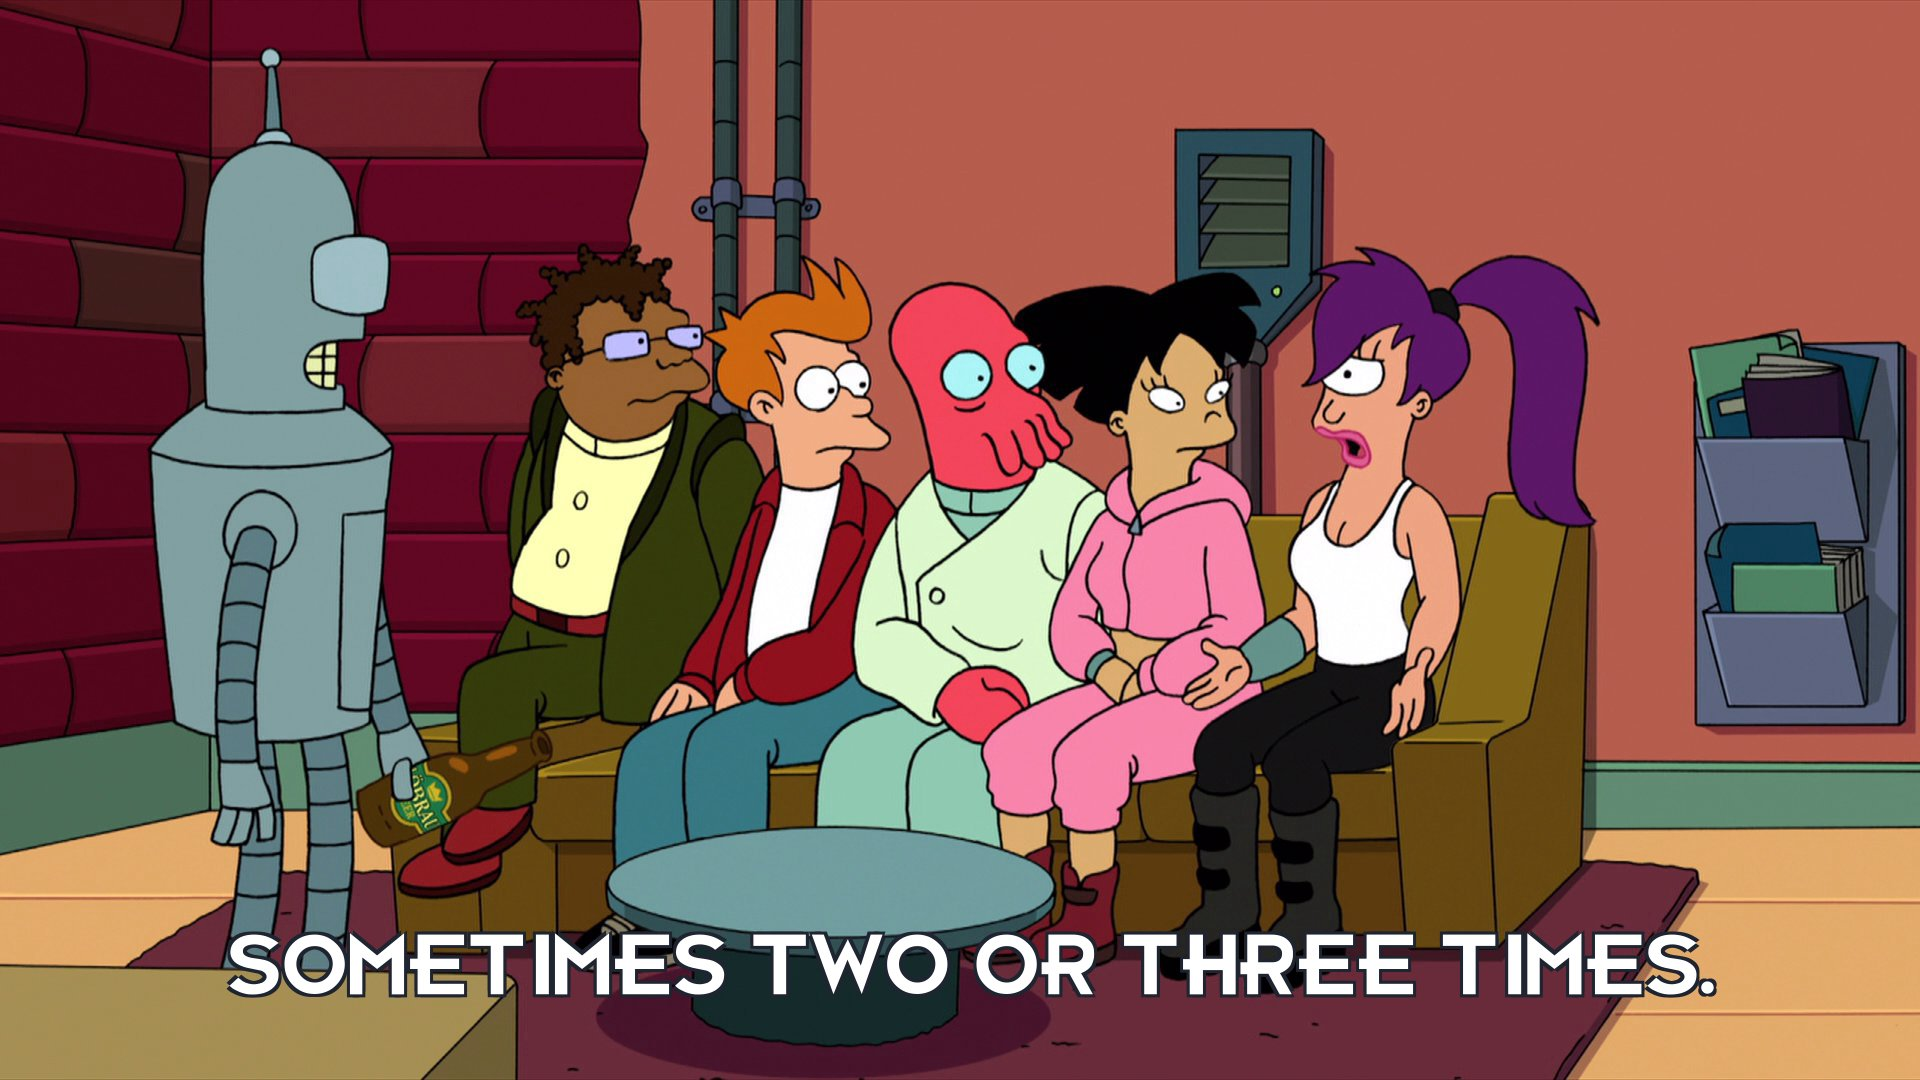 Turanga Leela: Sometimes two or three times.